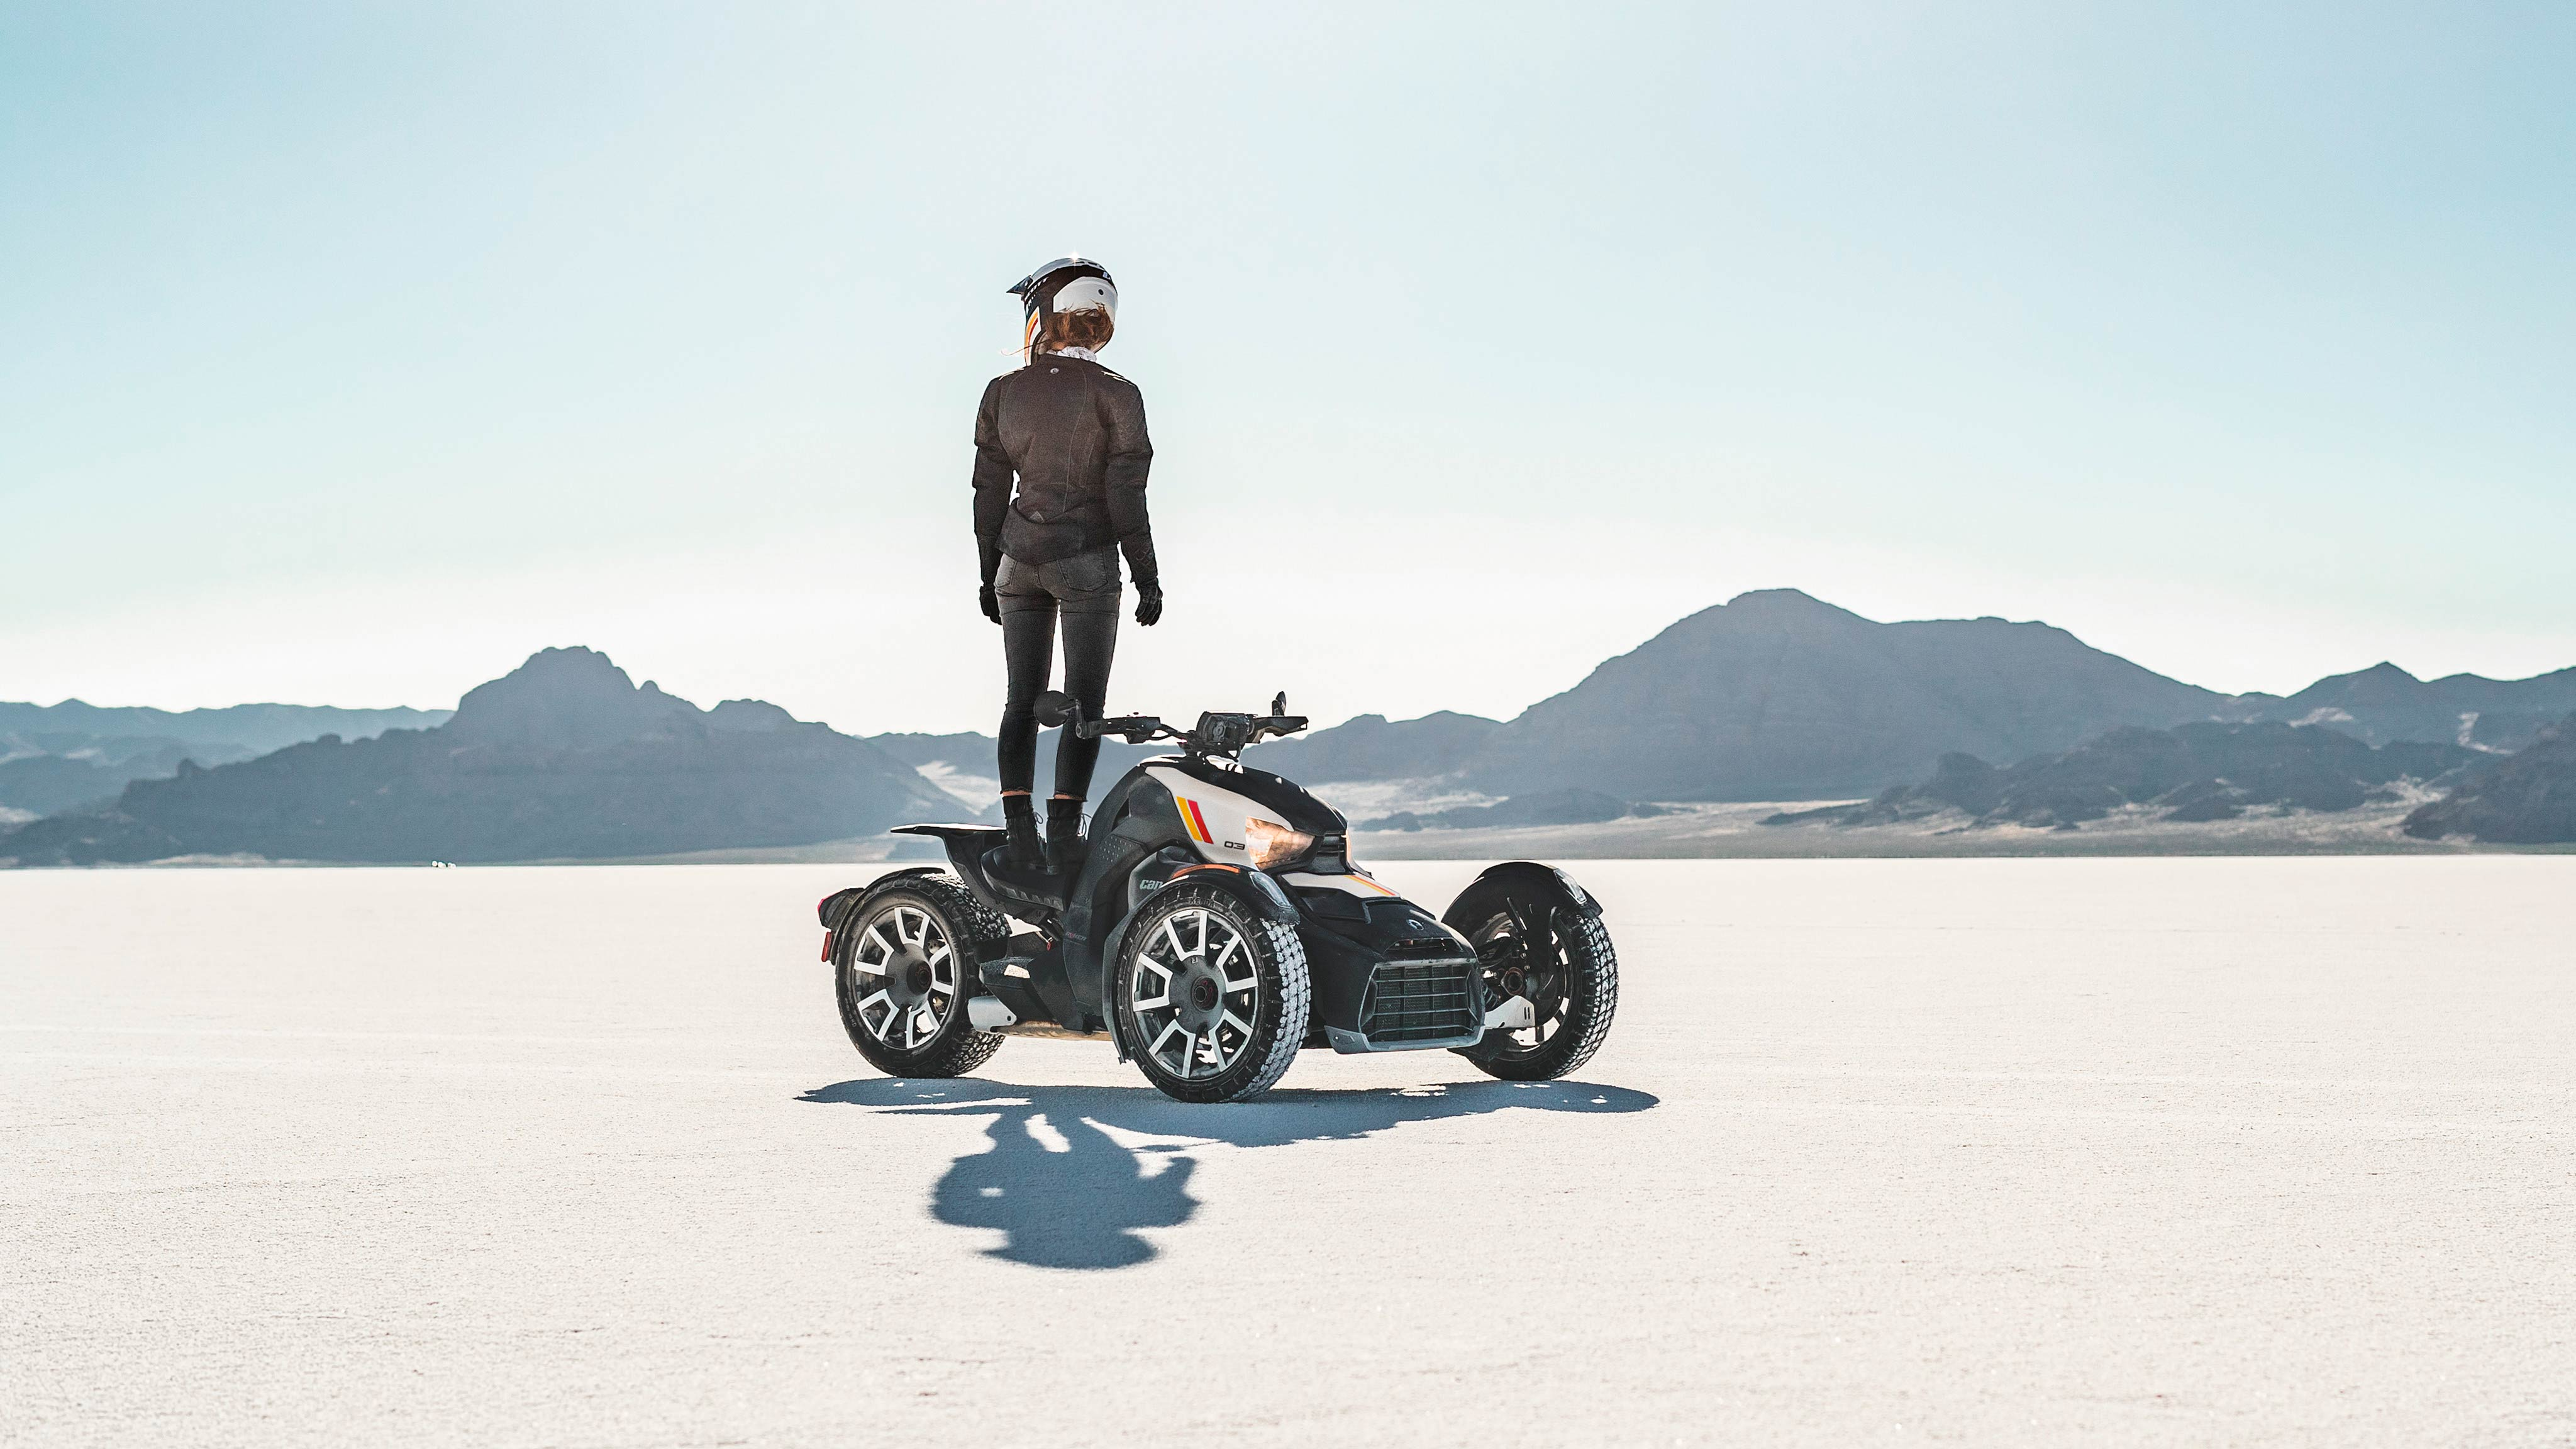 A man standing on his Can-Am vehicle contemplating the desert landscape.